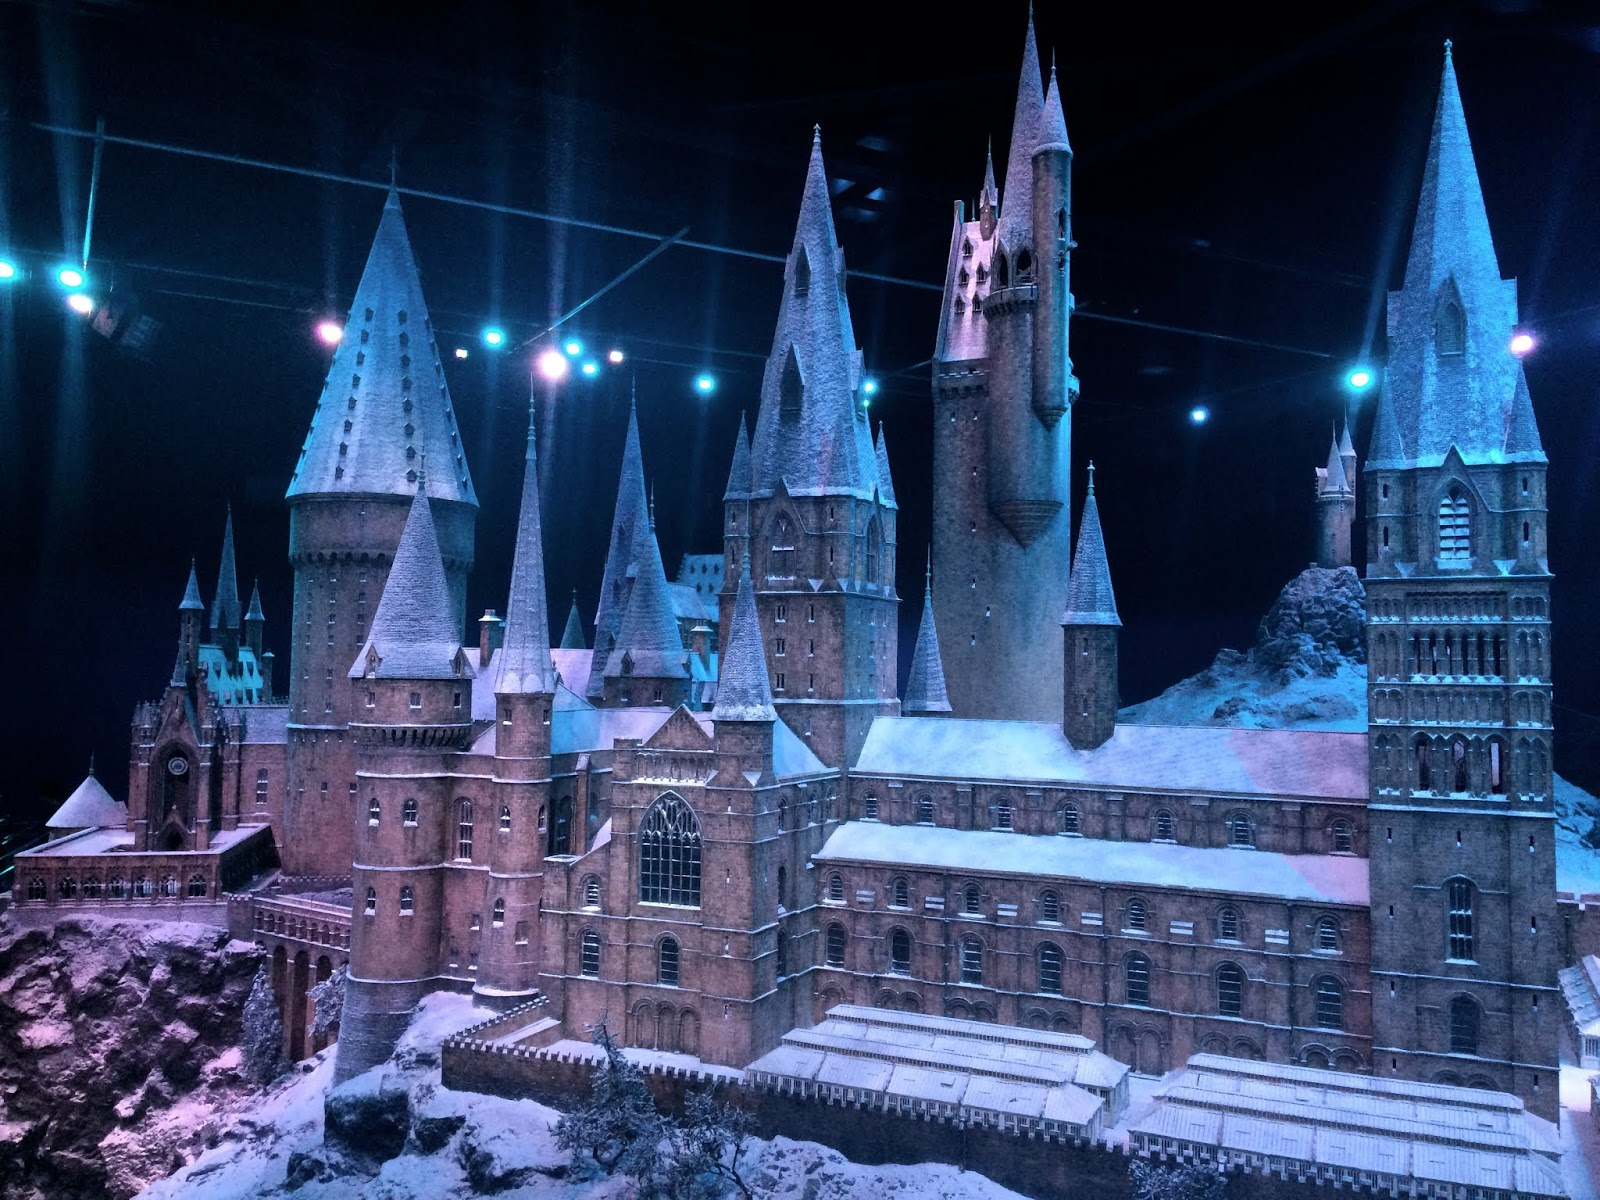 Hogwarts model building, showing the whole set at a scale of 1/24